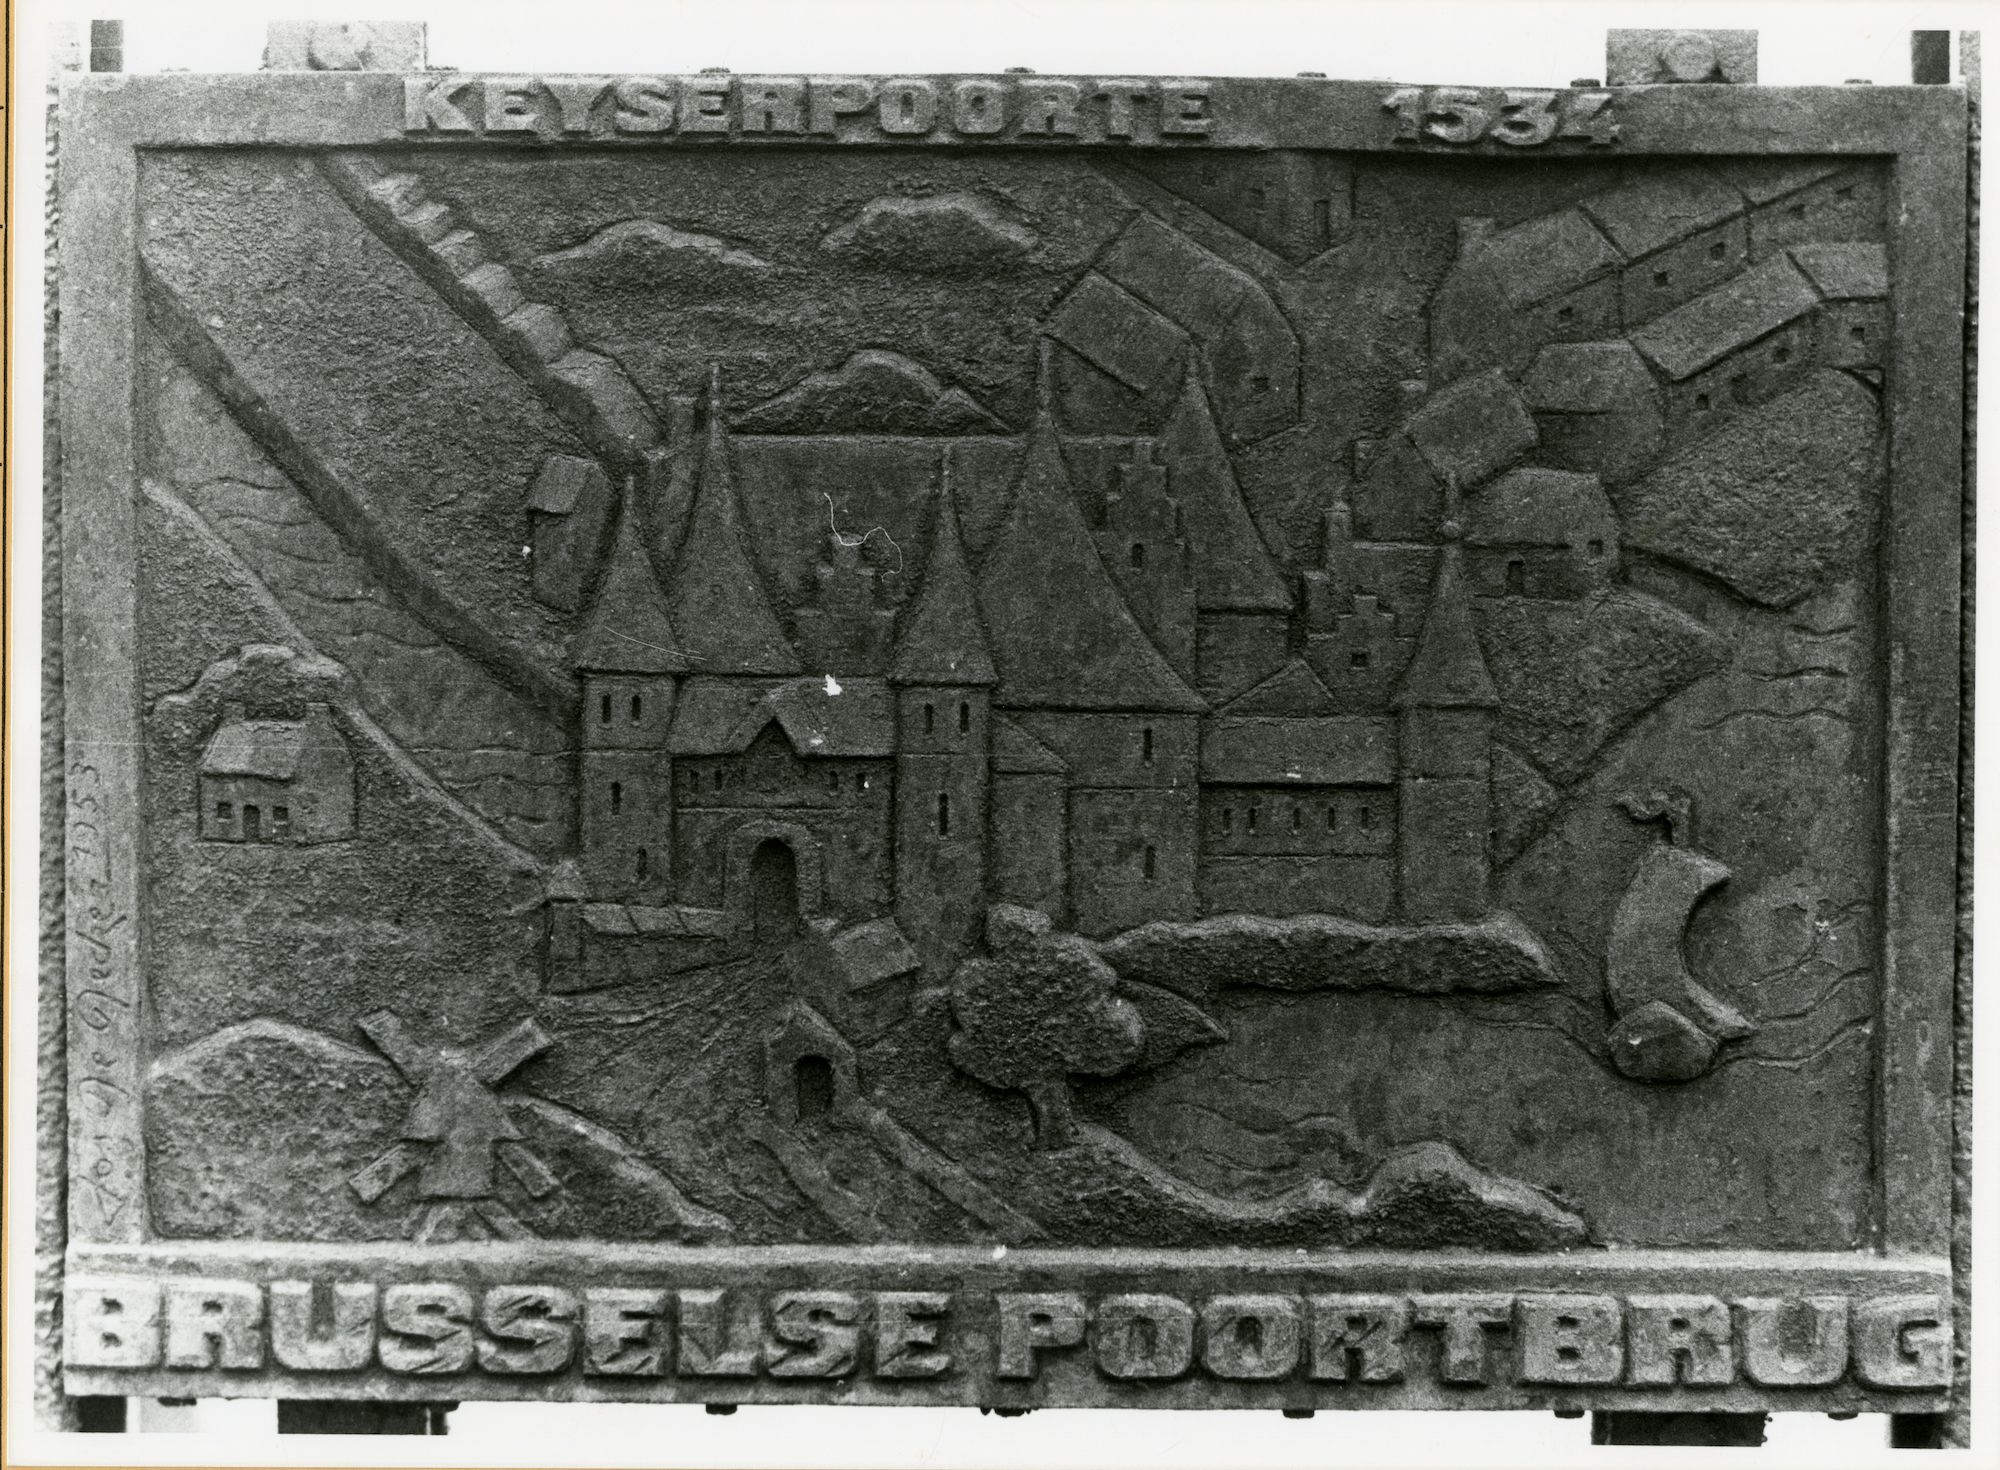 Gent: Brusselse Poortbrug: Keizerbruggen: Gedenkplaat: Keyserpoorte, 1979